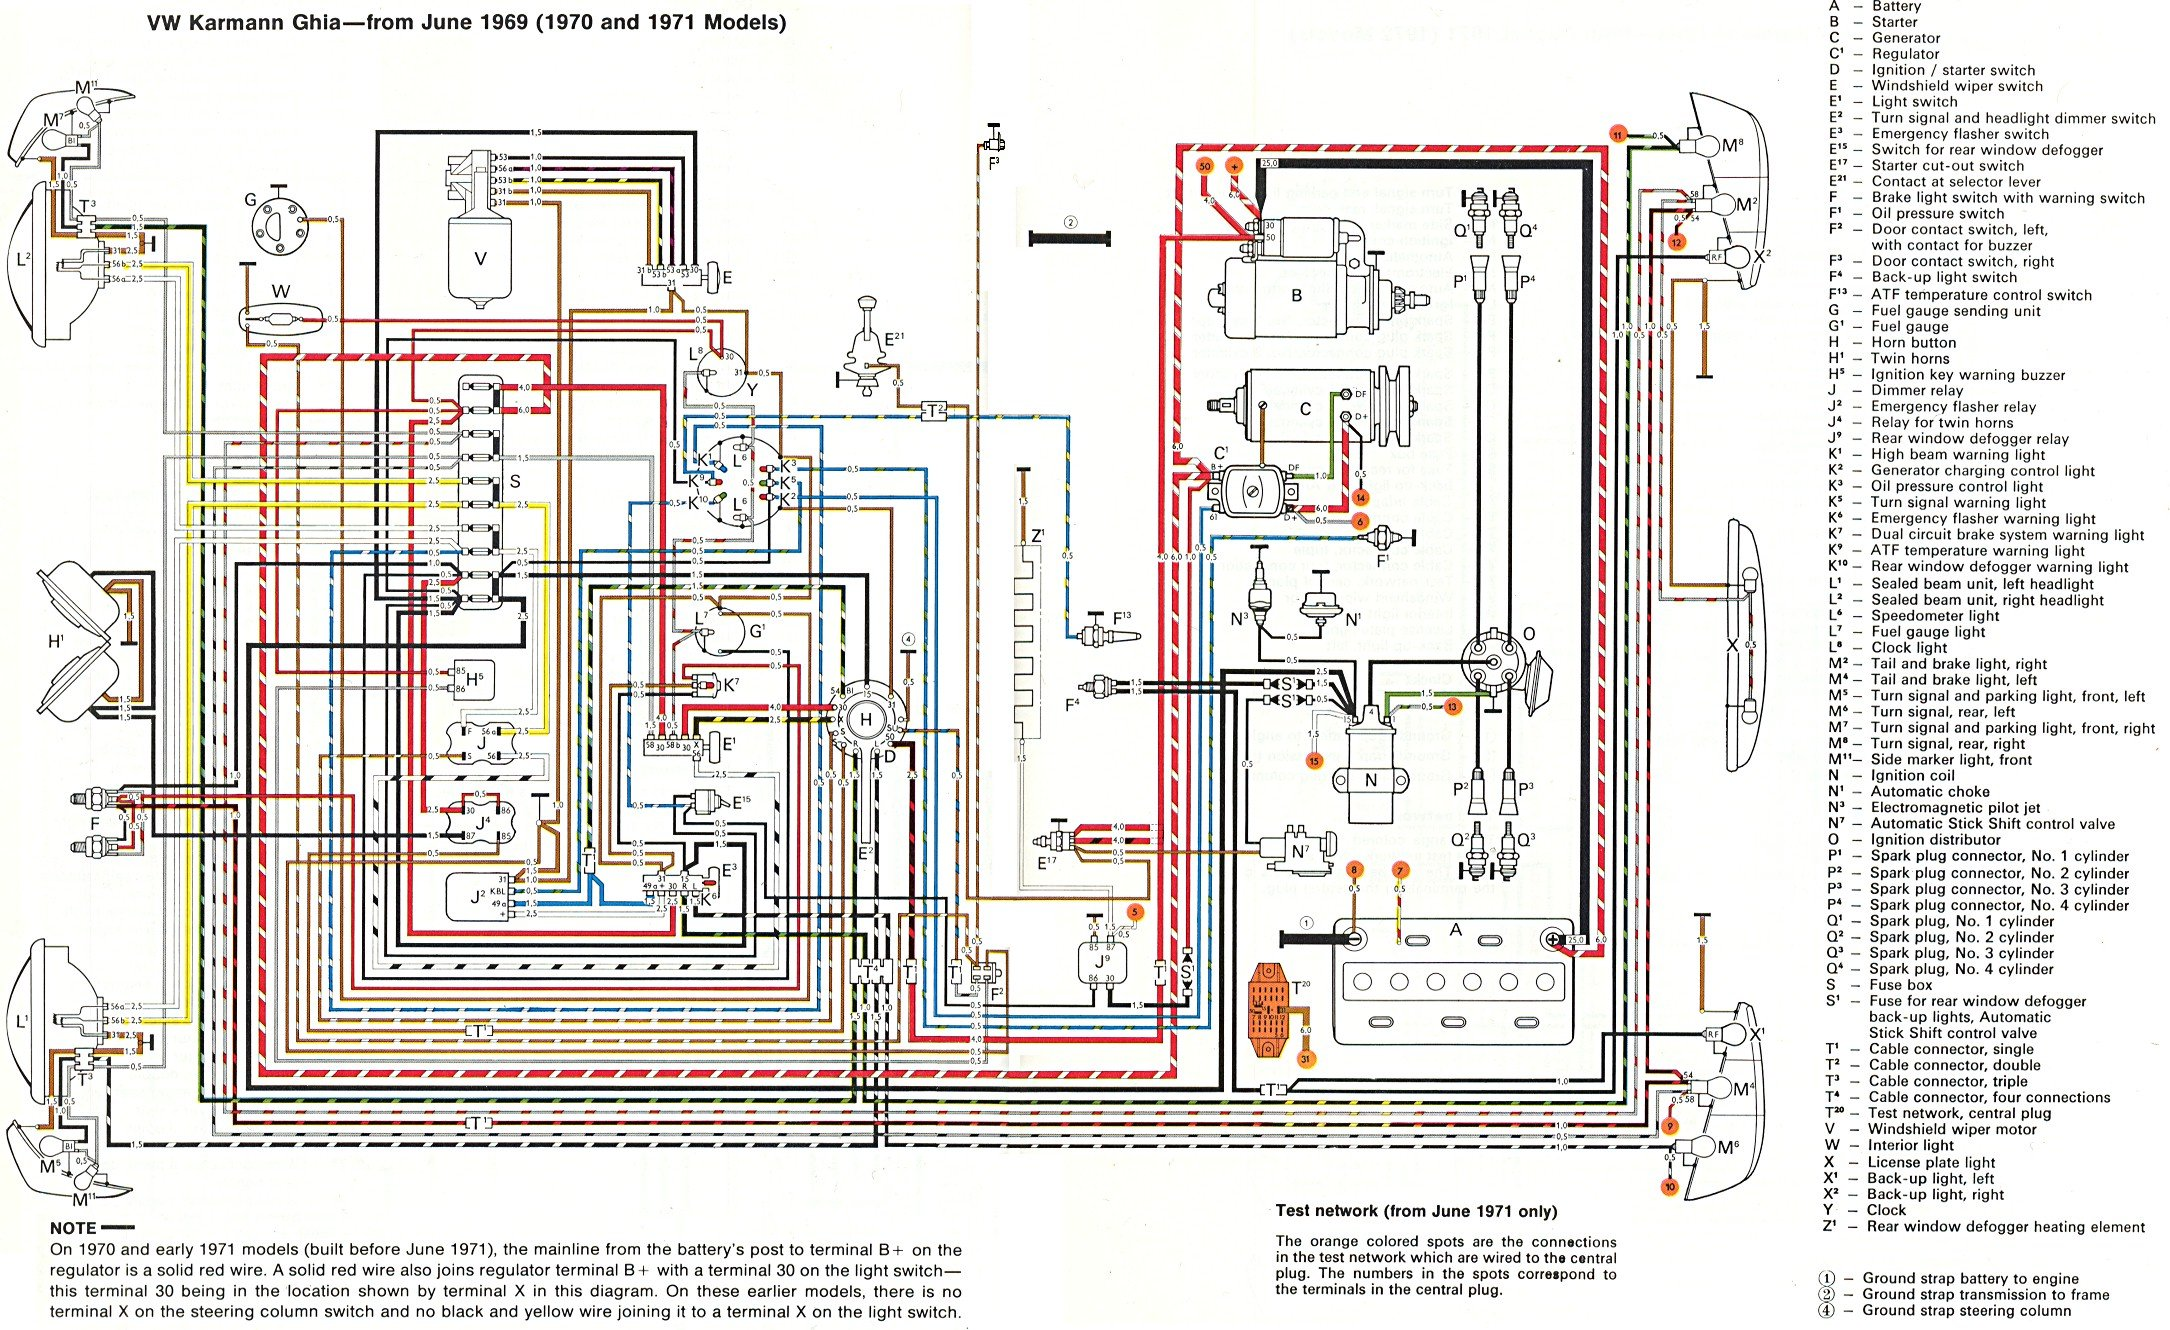 Nova Turn Signal Wiring - Data Wiring Diagram Update  Chevy Nova Under Dash Wiring Diagram on 71 nova wheels, 71 nova fuel gauge, 71 nova suspension, 1970 nova diagram, 71 nova instrument-panel, 71 nova steering, 71 nova headlight, 71 nova wire reverse, 71 nova brochure, 71 nova ignition, 71 chevrolet wire diagram,